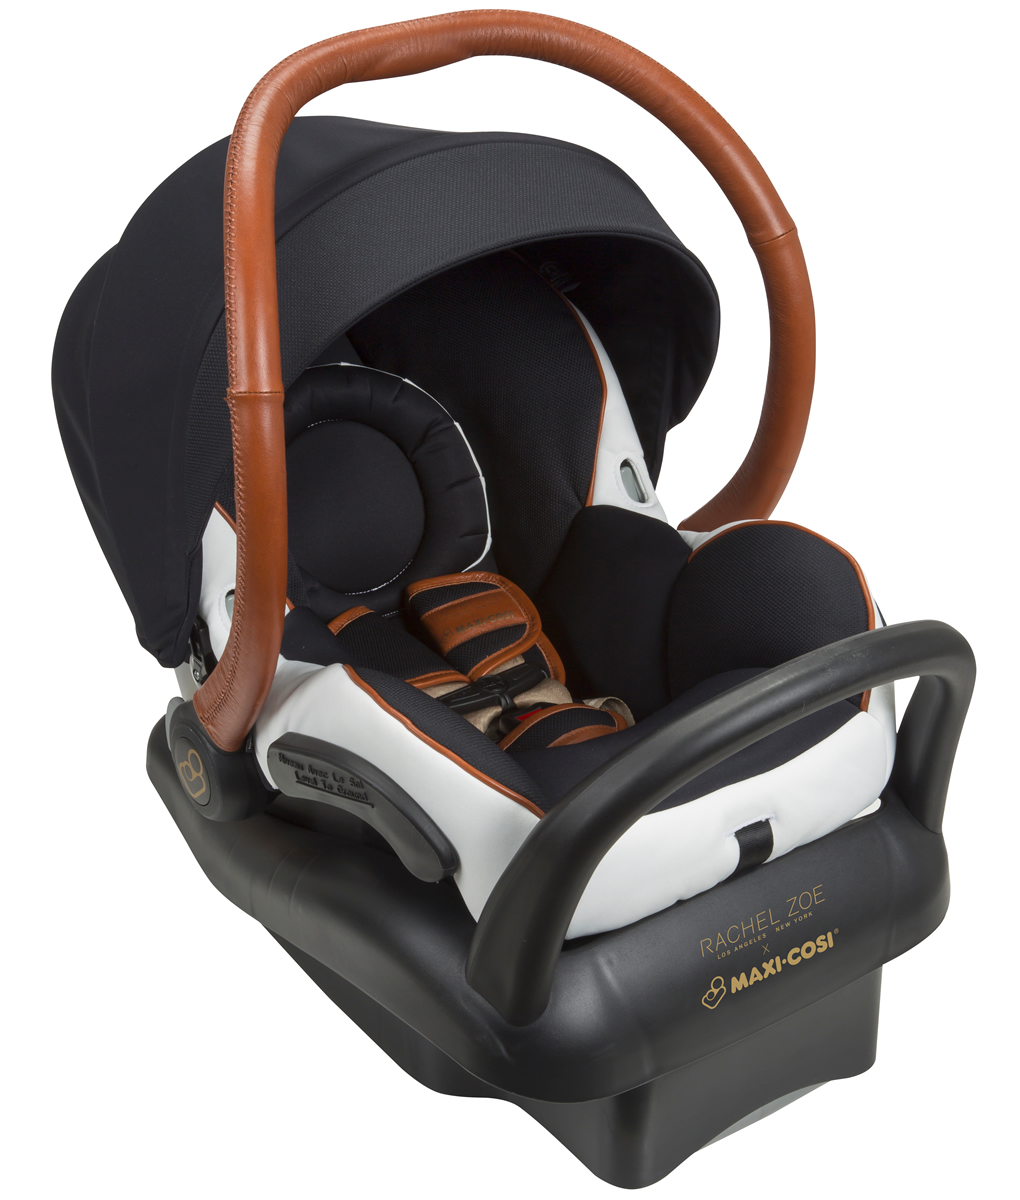 MAXI-COSI Mico Max 30 Infant Car Seat - Jet Set by Rachel Zoe